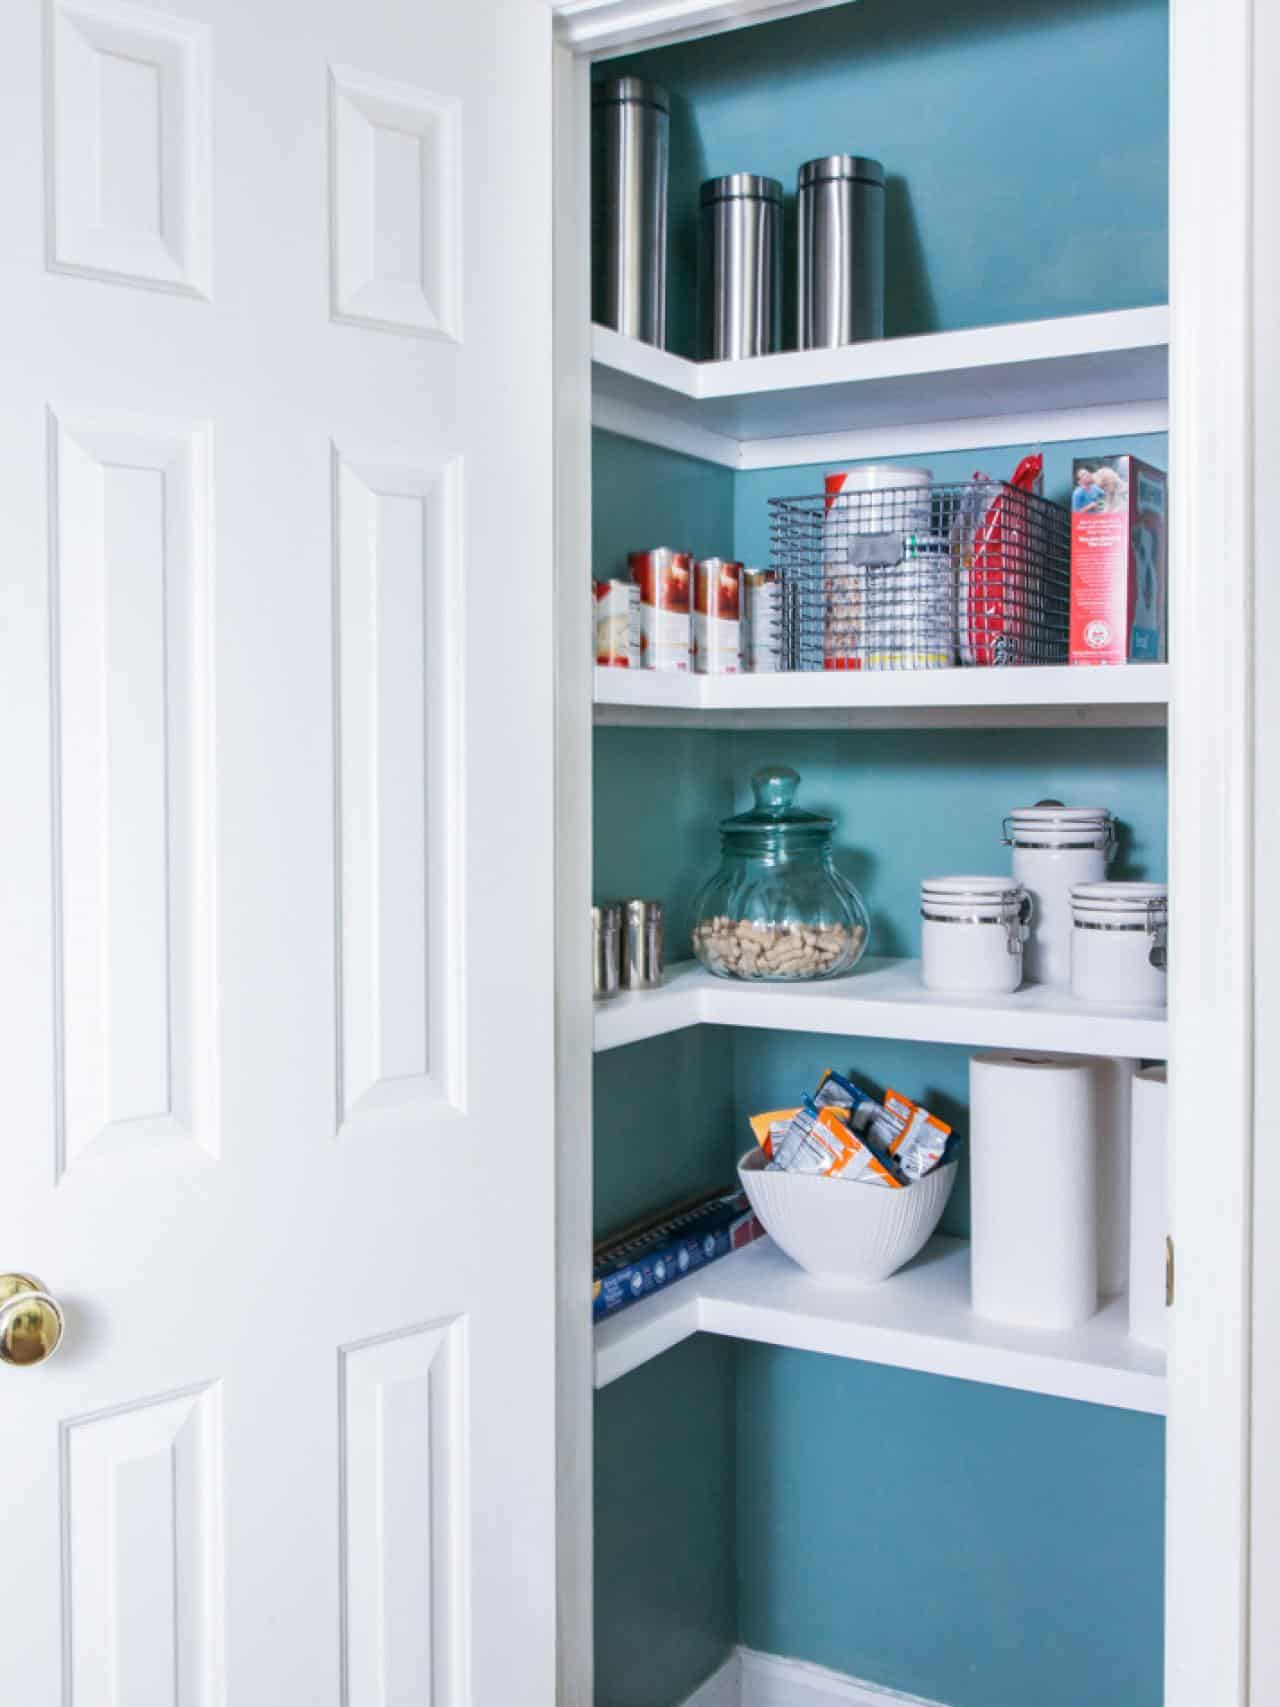 How to replace pantry wire shelving